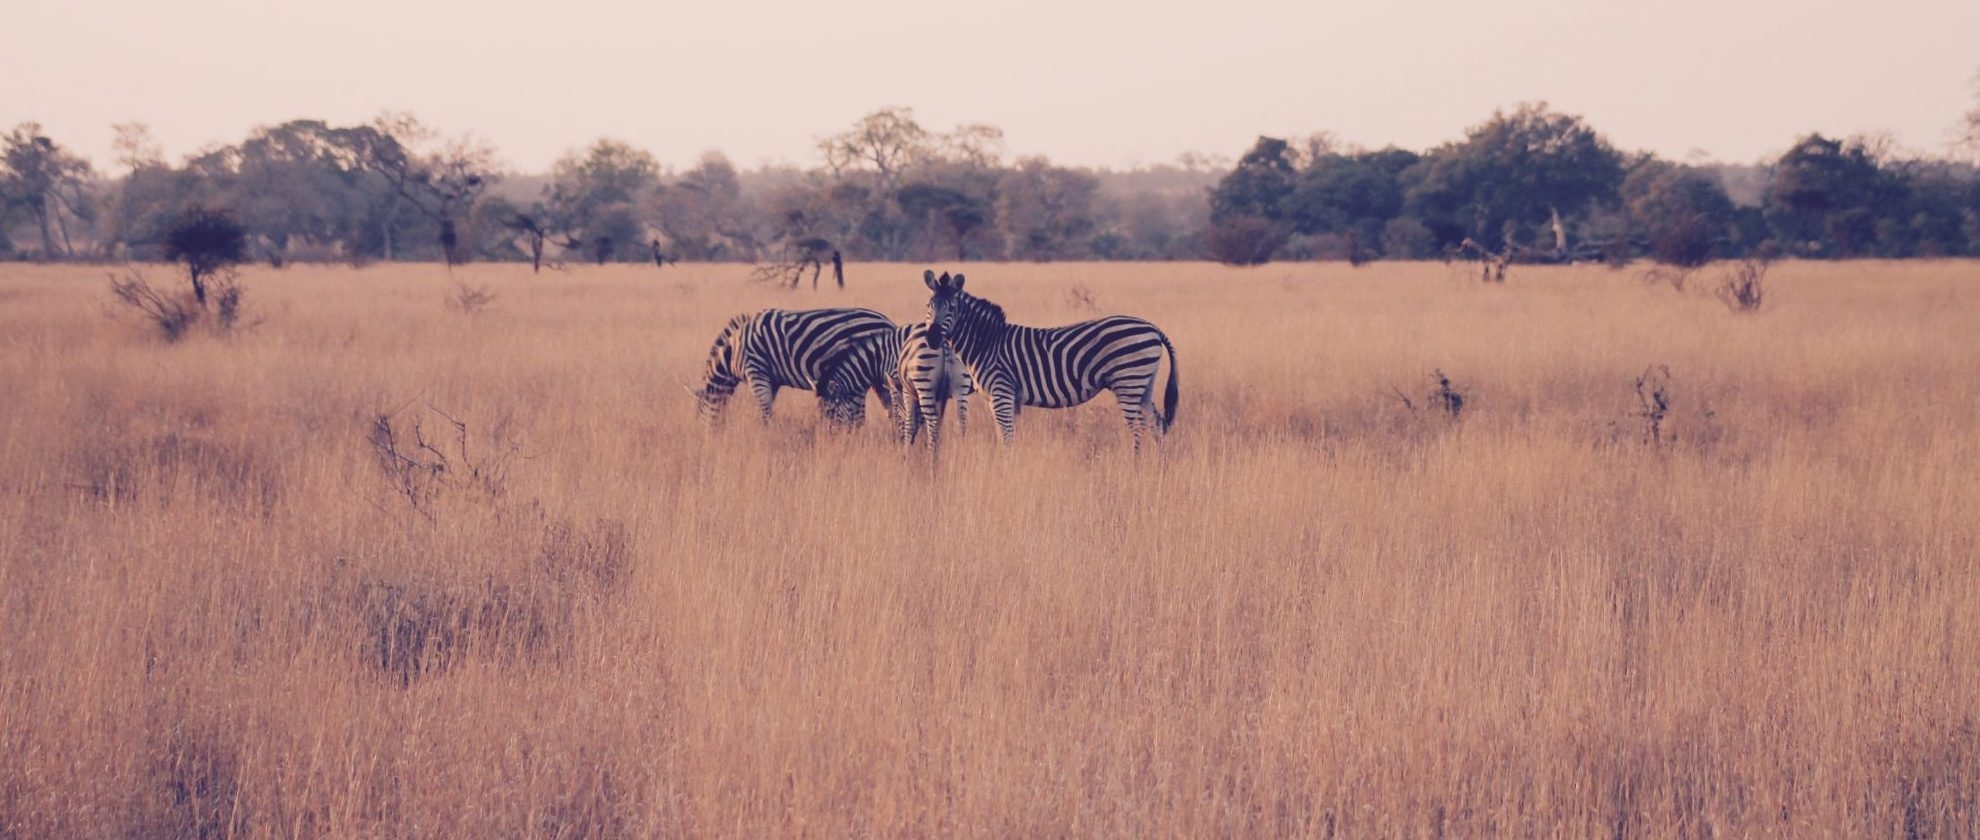 zebras in KNP No W